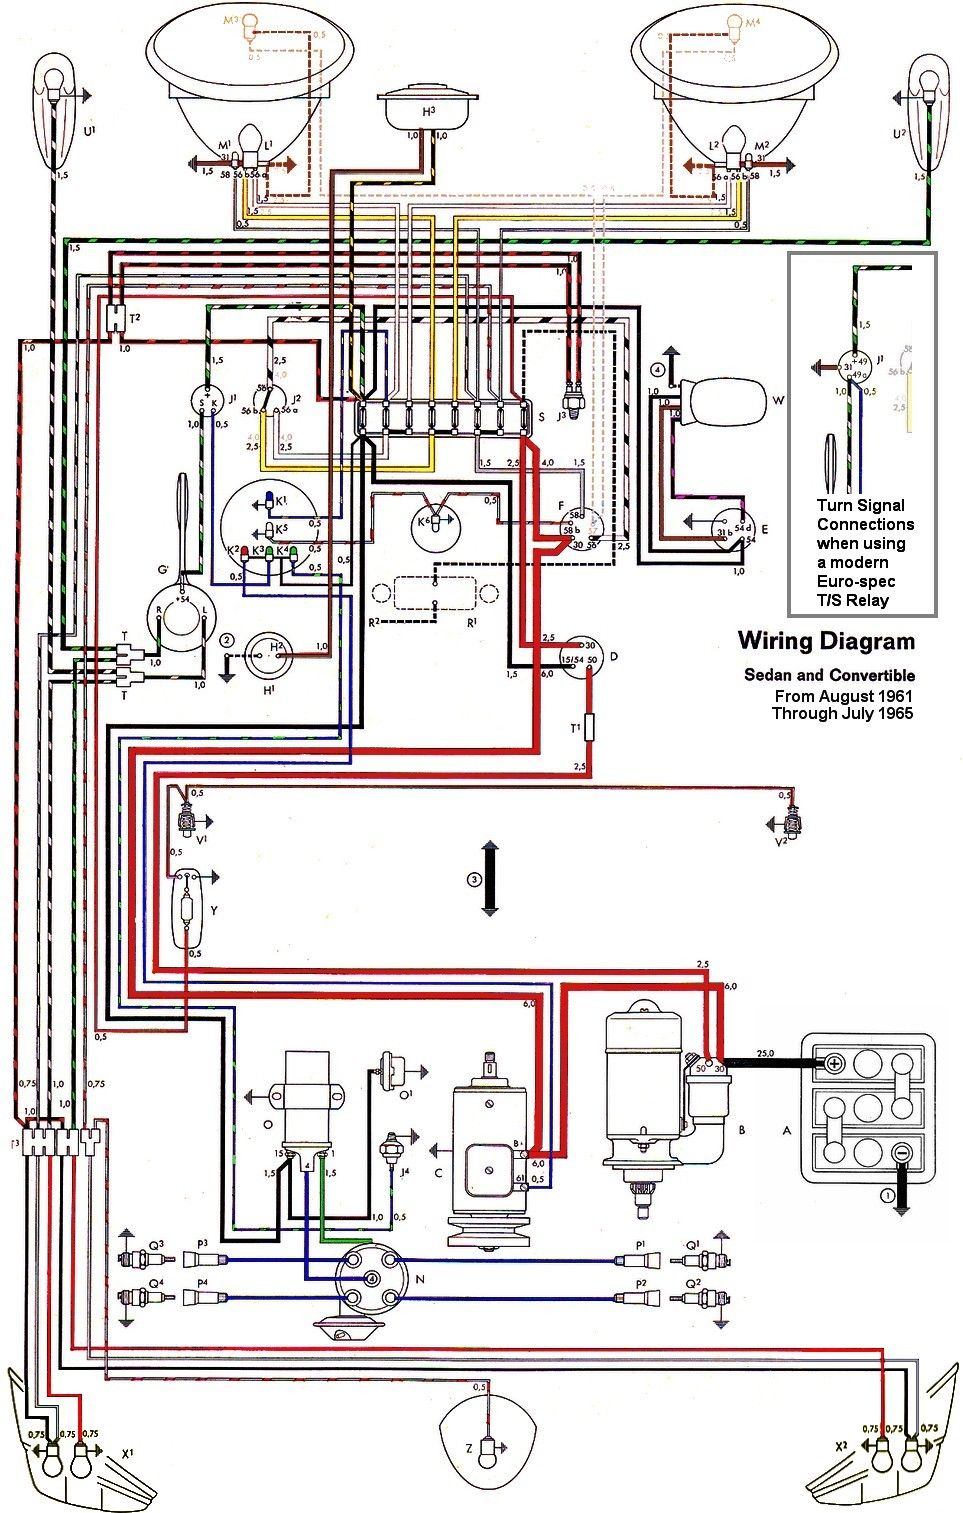 volkswagen car wiring diagram volkswagen image wiring diagram vw beetle sedan and convertible 1961 1965 vw on volkswagen car wiring diagram